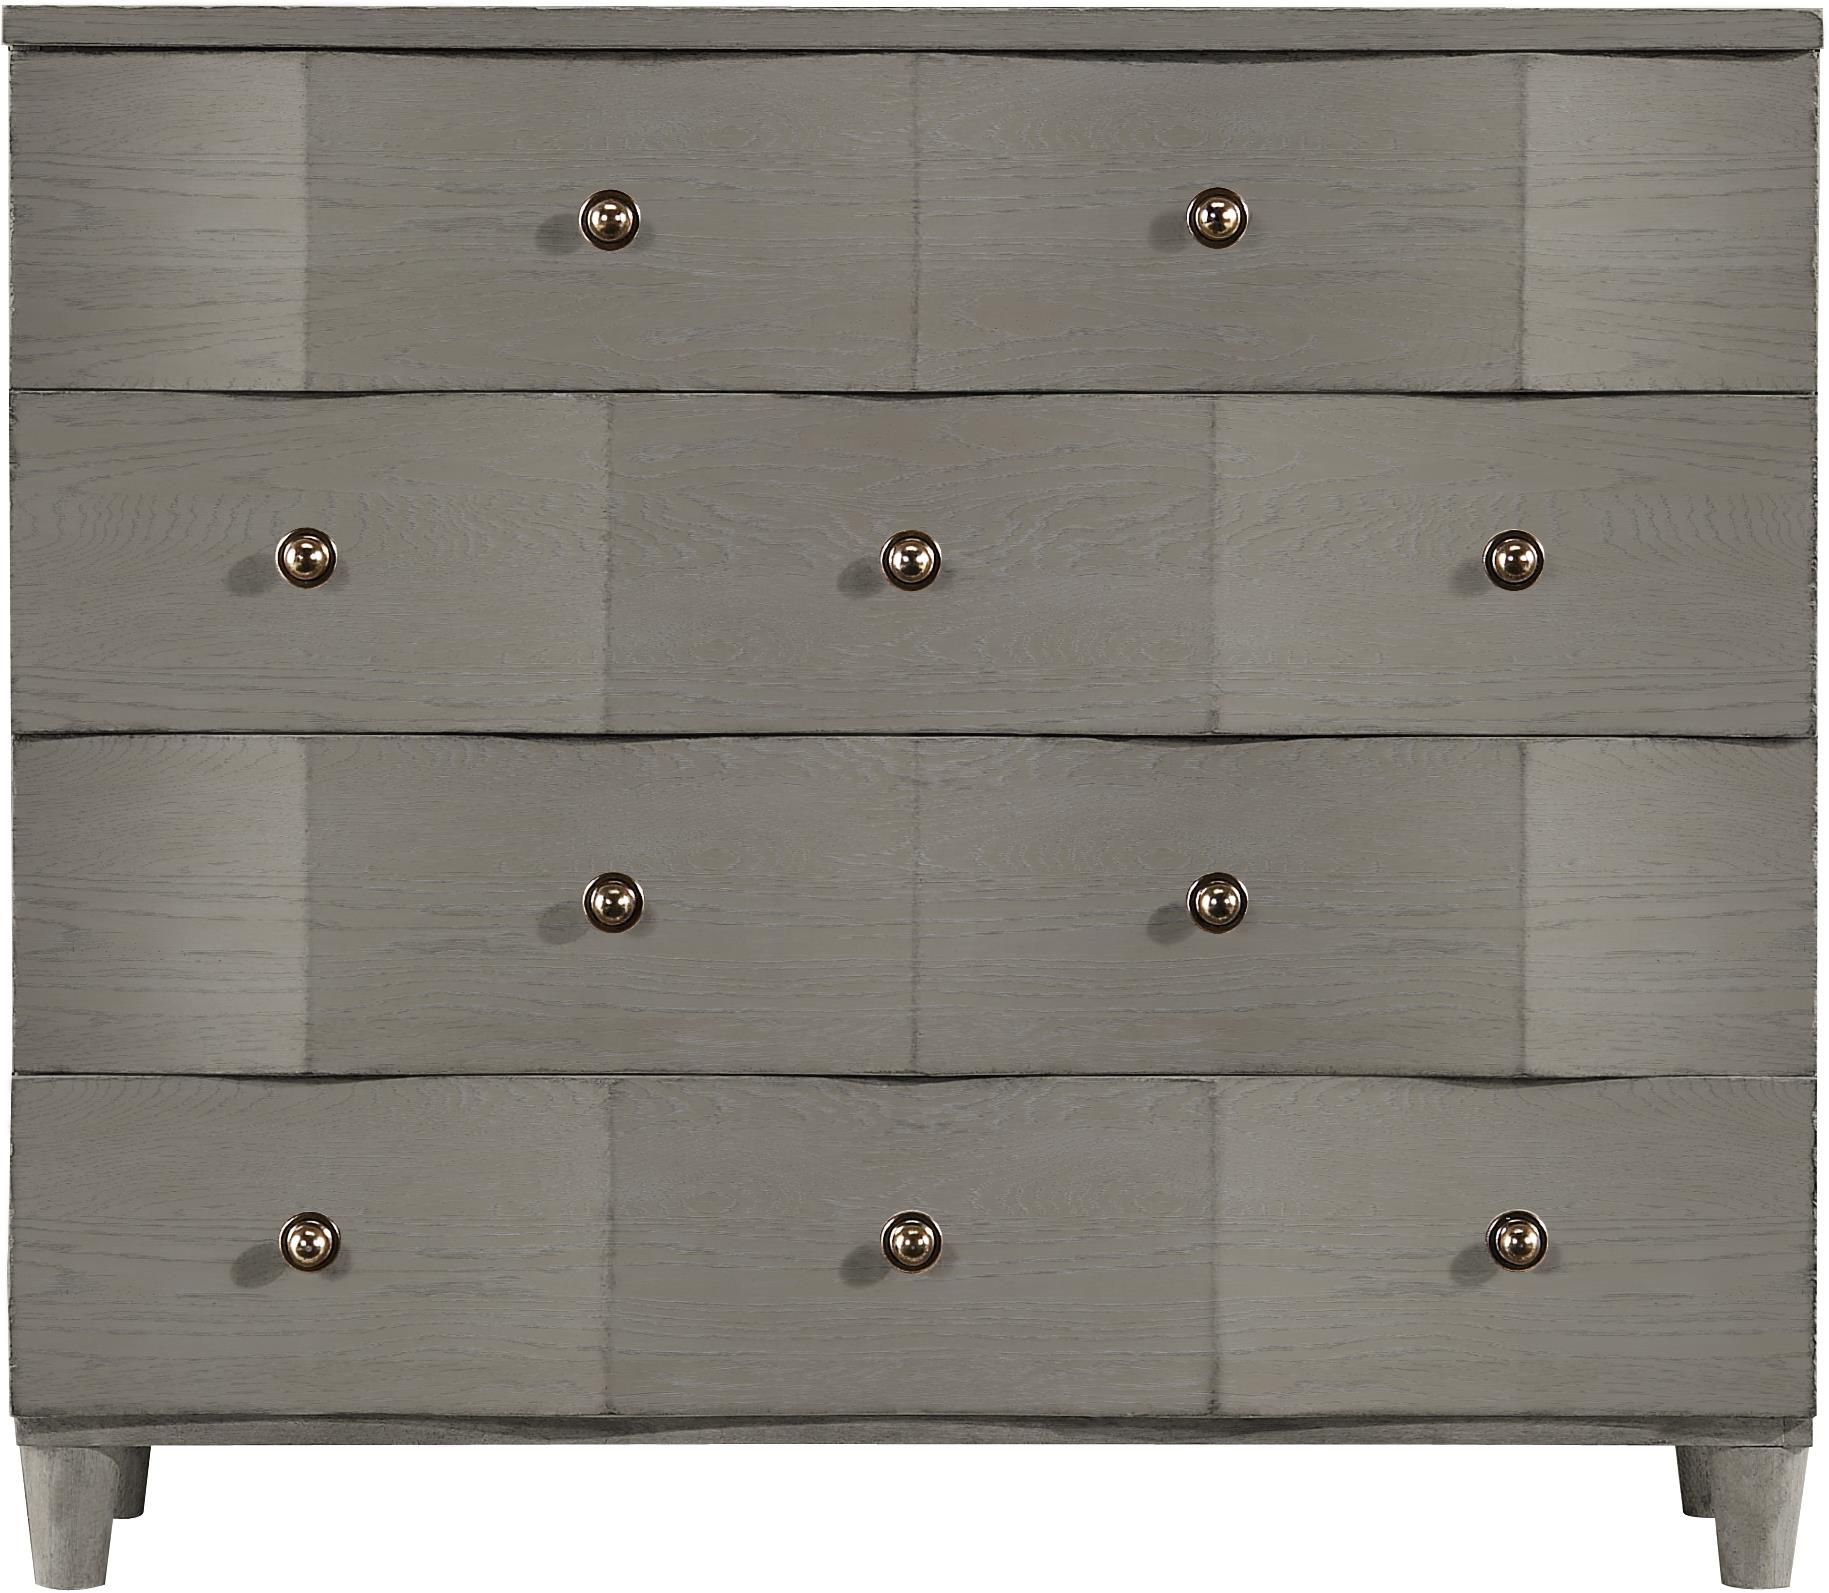 Stanley Furniture Coastal Living Resort Ocean Breaker Dresser - Item Number: 062-C3-02